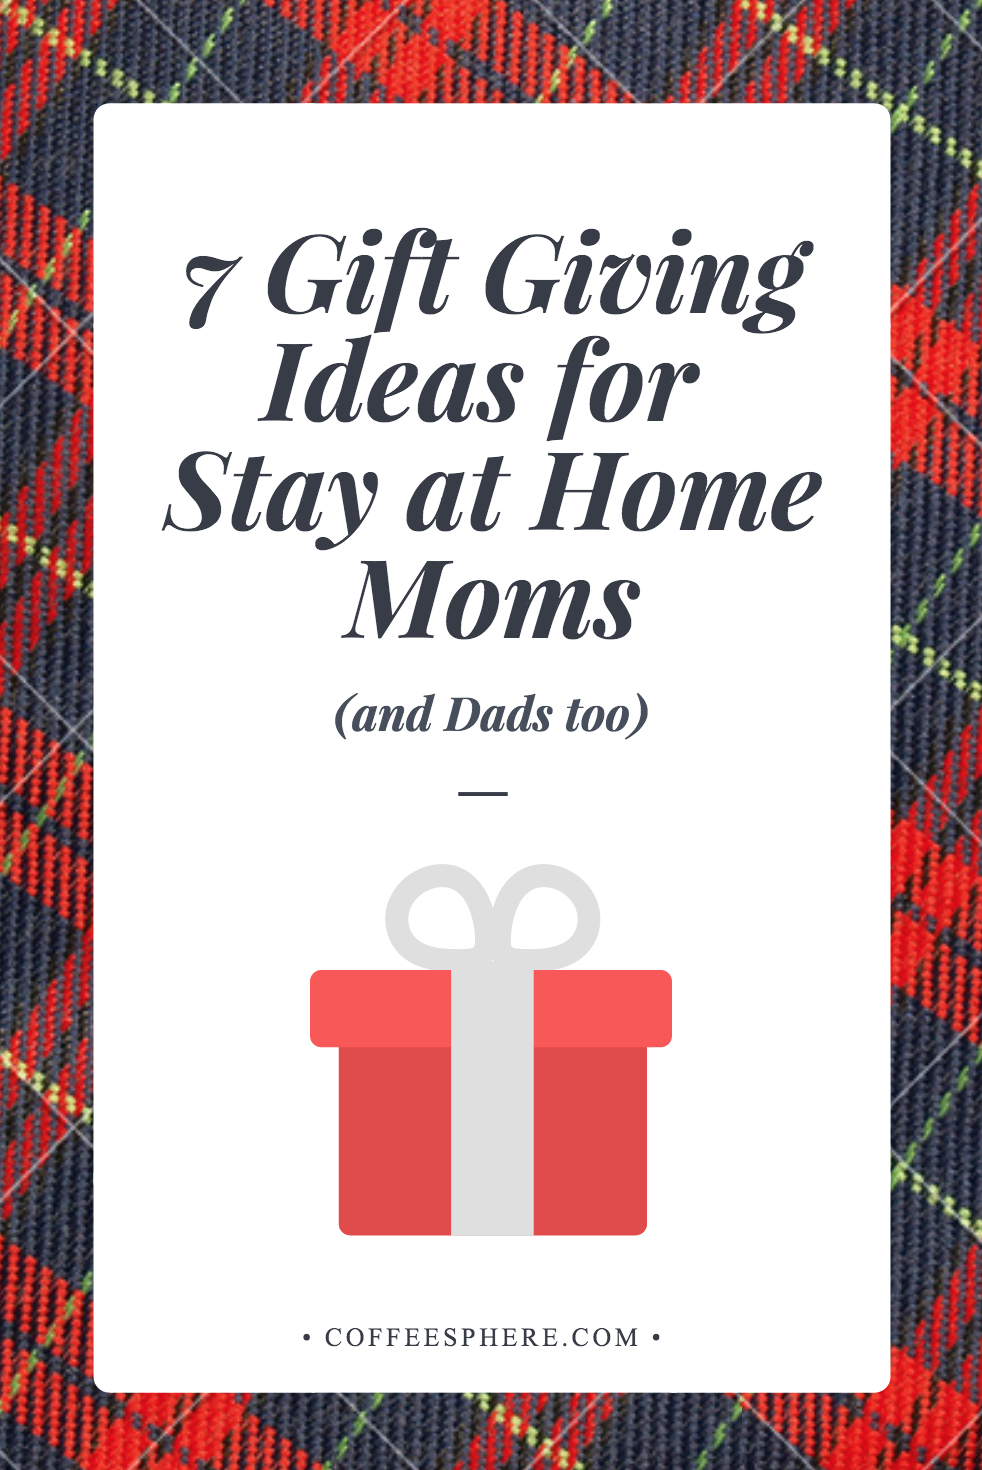 Gift Giving Ideas: 7 Gifts for Coffee Loving Stay at Home Moms